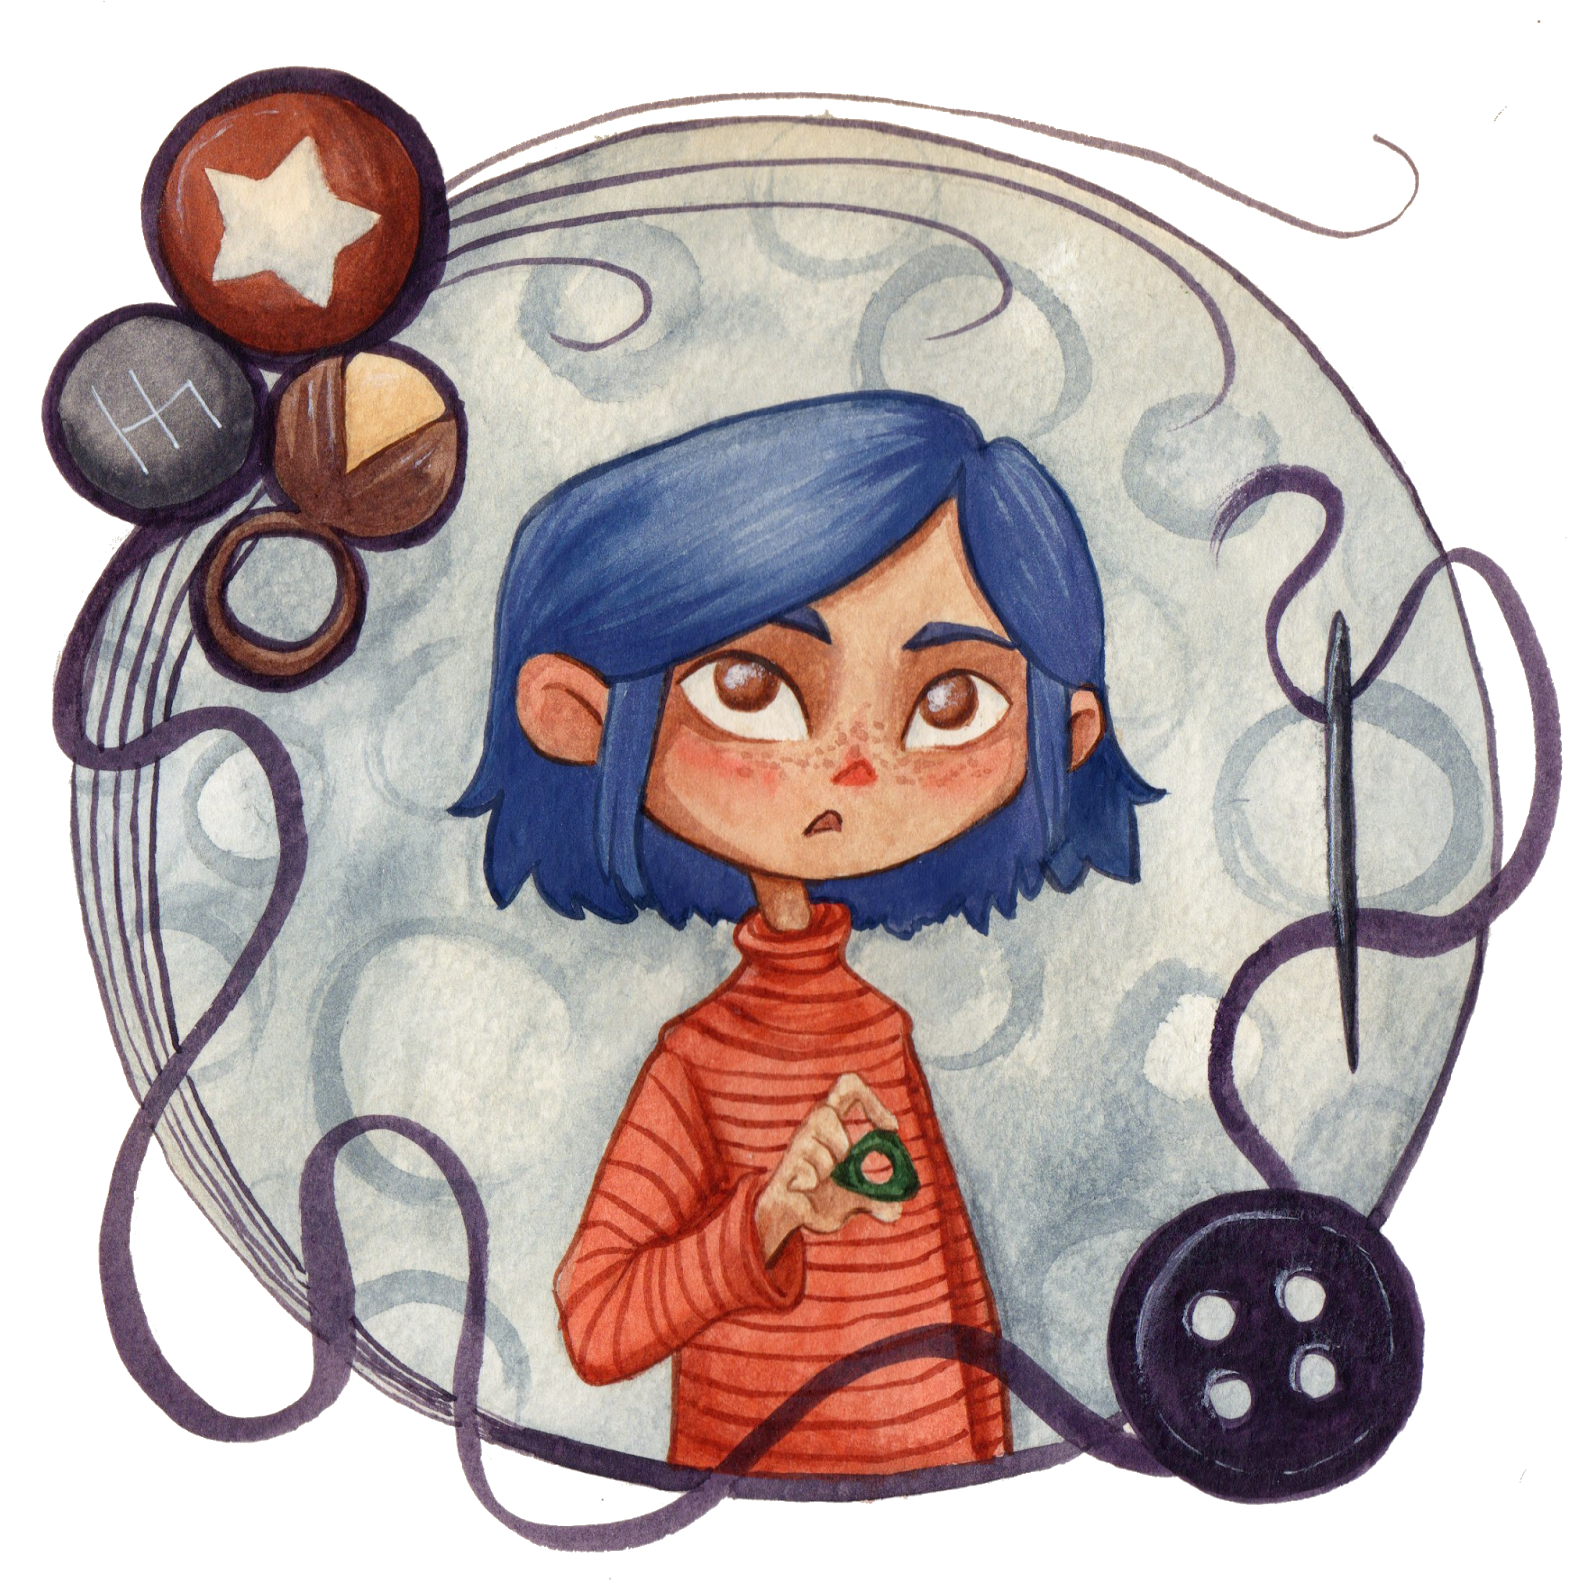 Coraline Clipart Png Download Full Size Clipart 3135971 Pinclipart